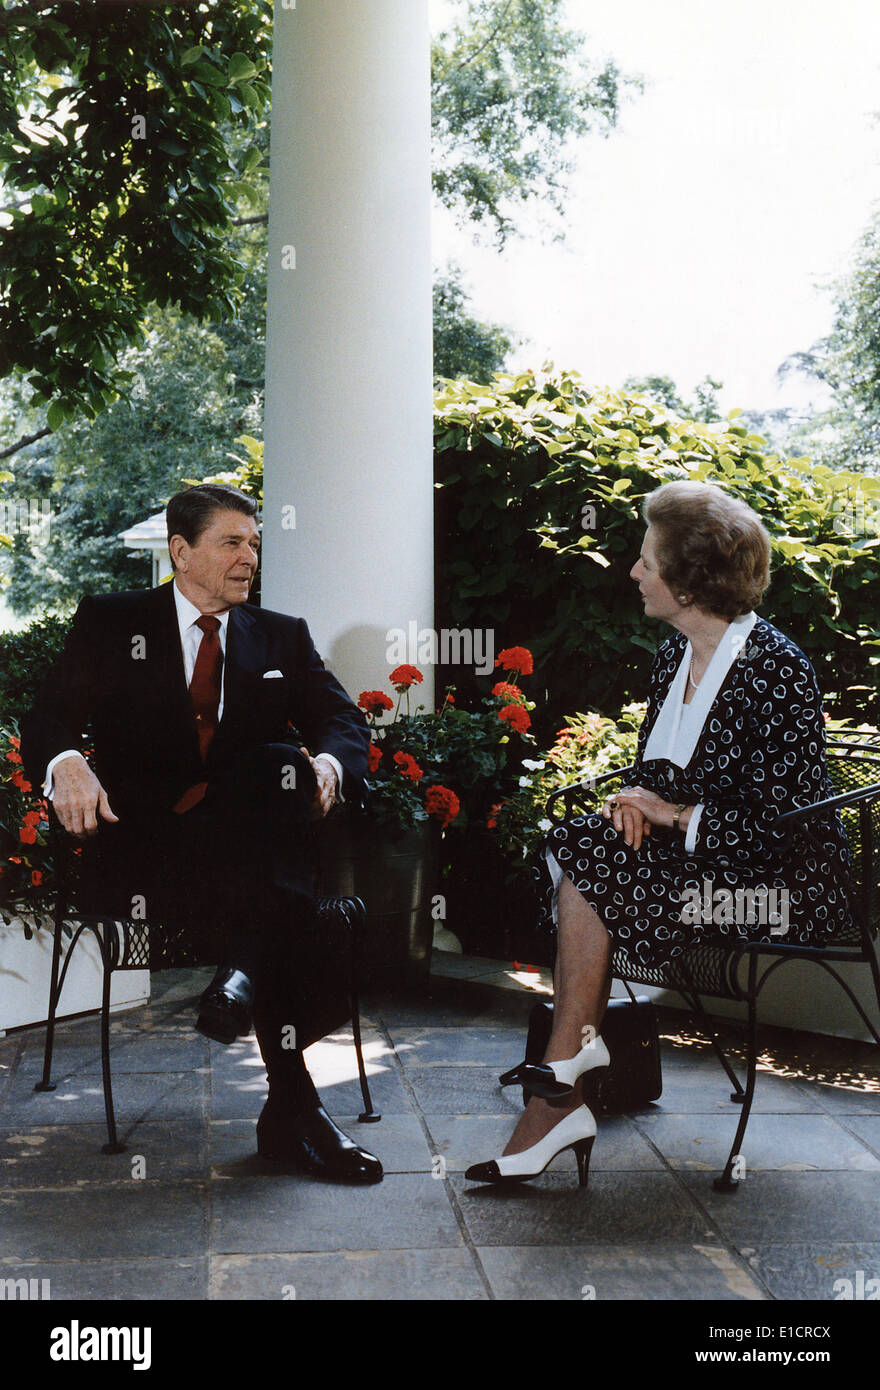 Ronald Reagan. President Reagan and Prime Minister Thatcher talking on the patio outside of the Oval Office. The - Stock Image